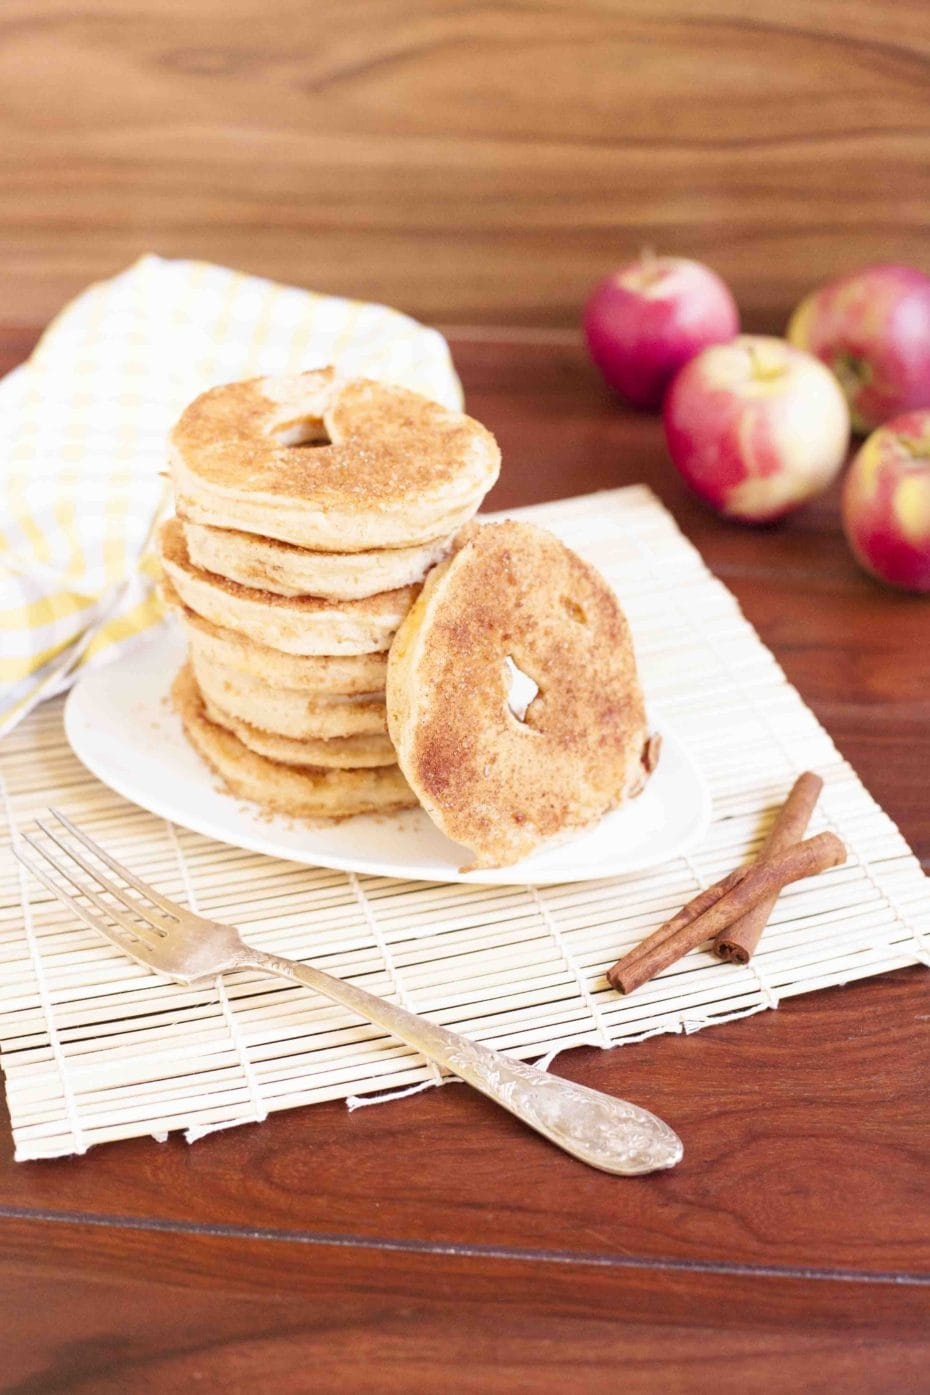 Stack of cinnamon fried battered apple rings on a white plate.